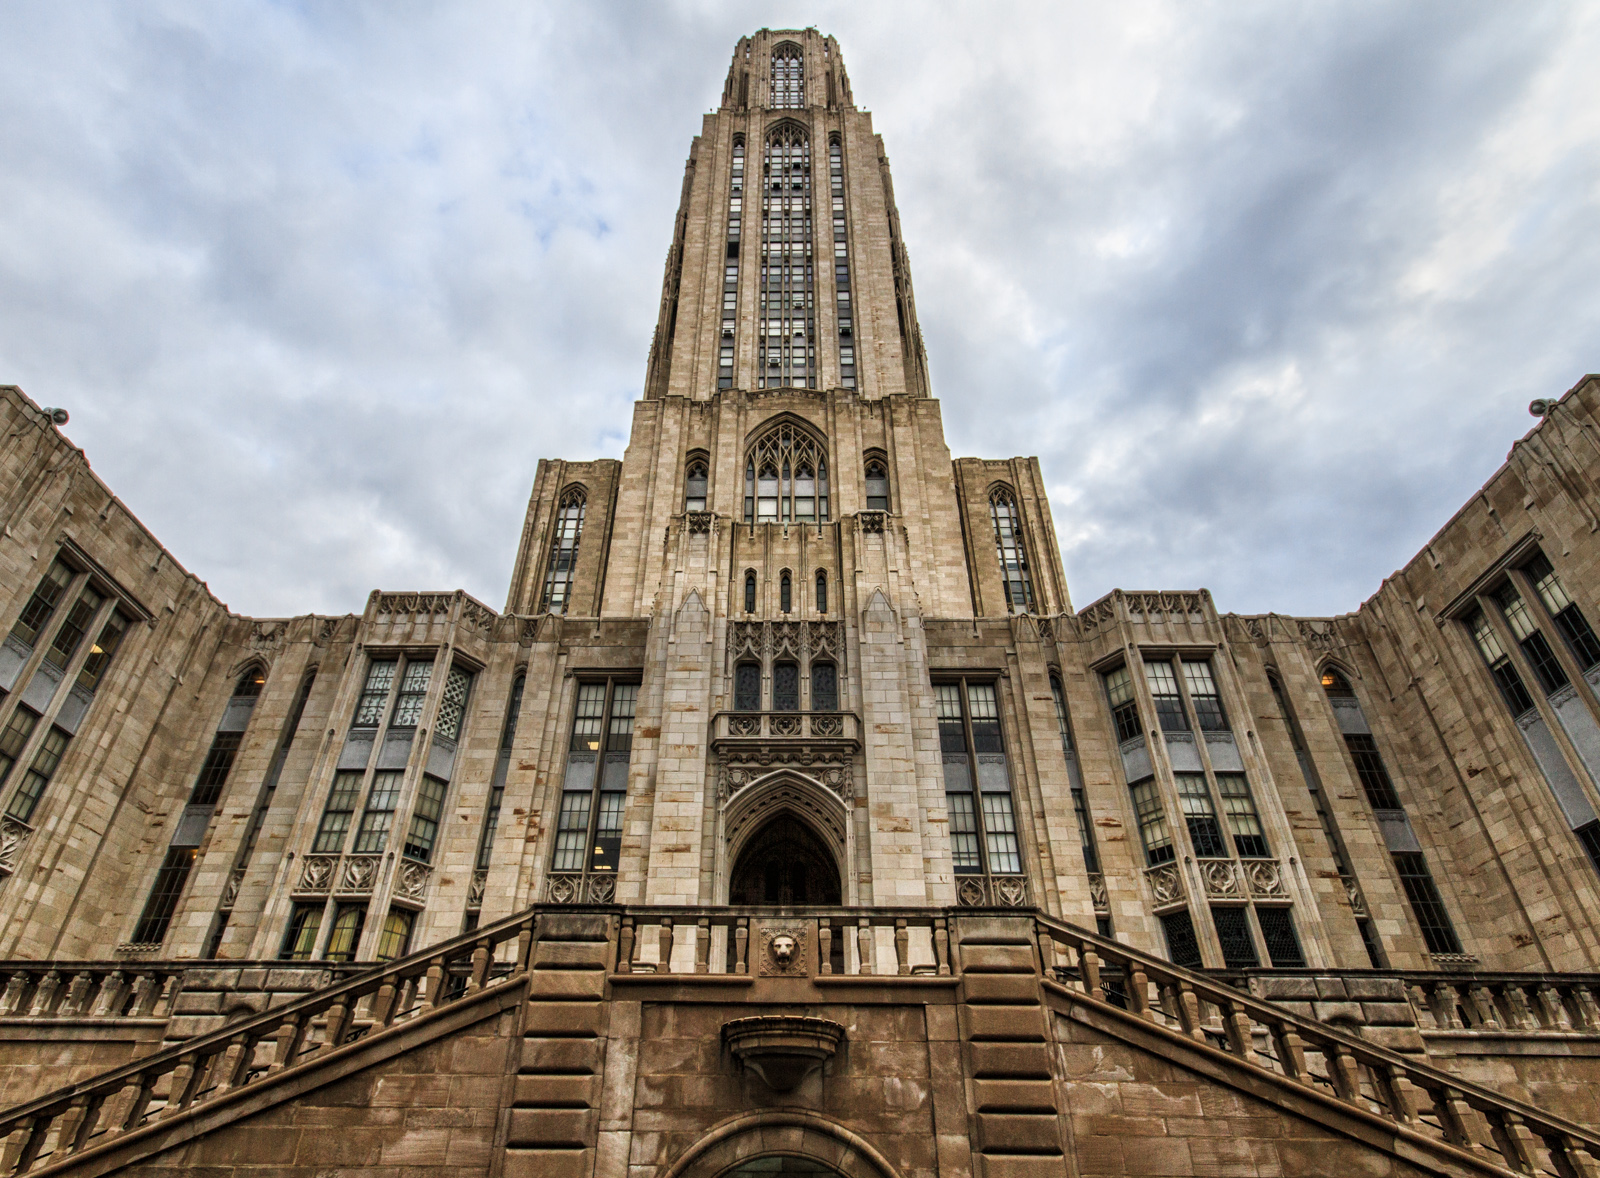 Photograph of the Cathedral of Learning